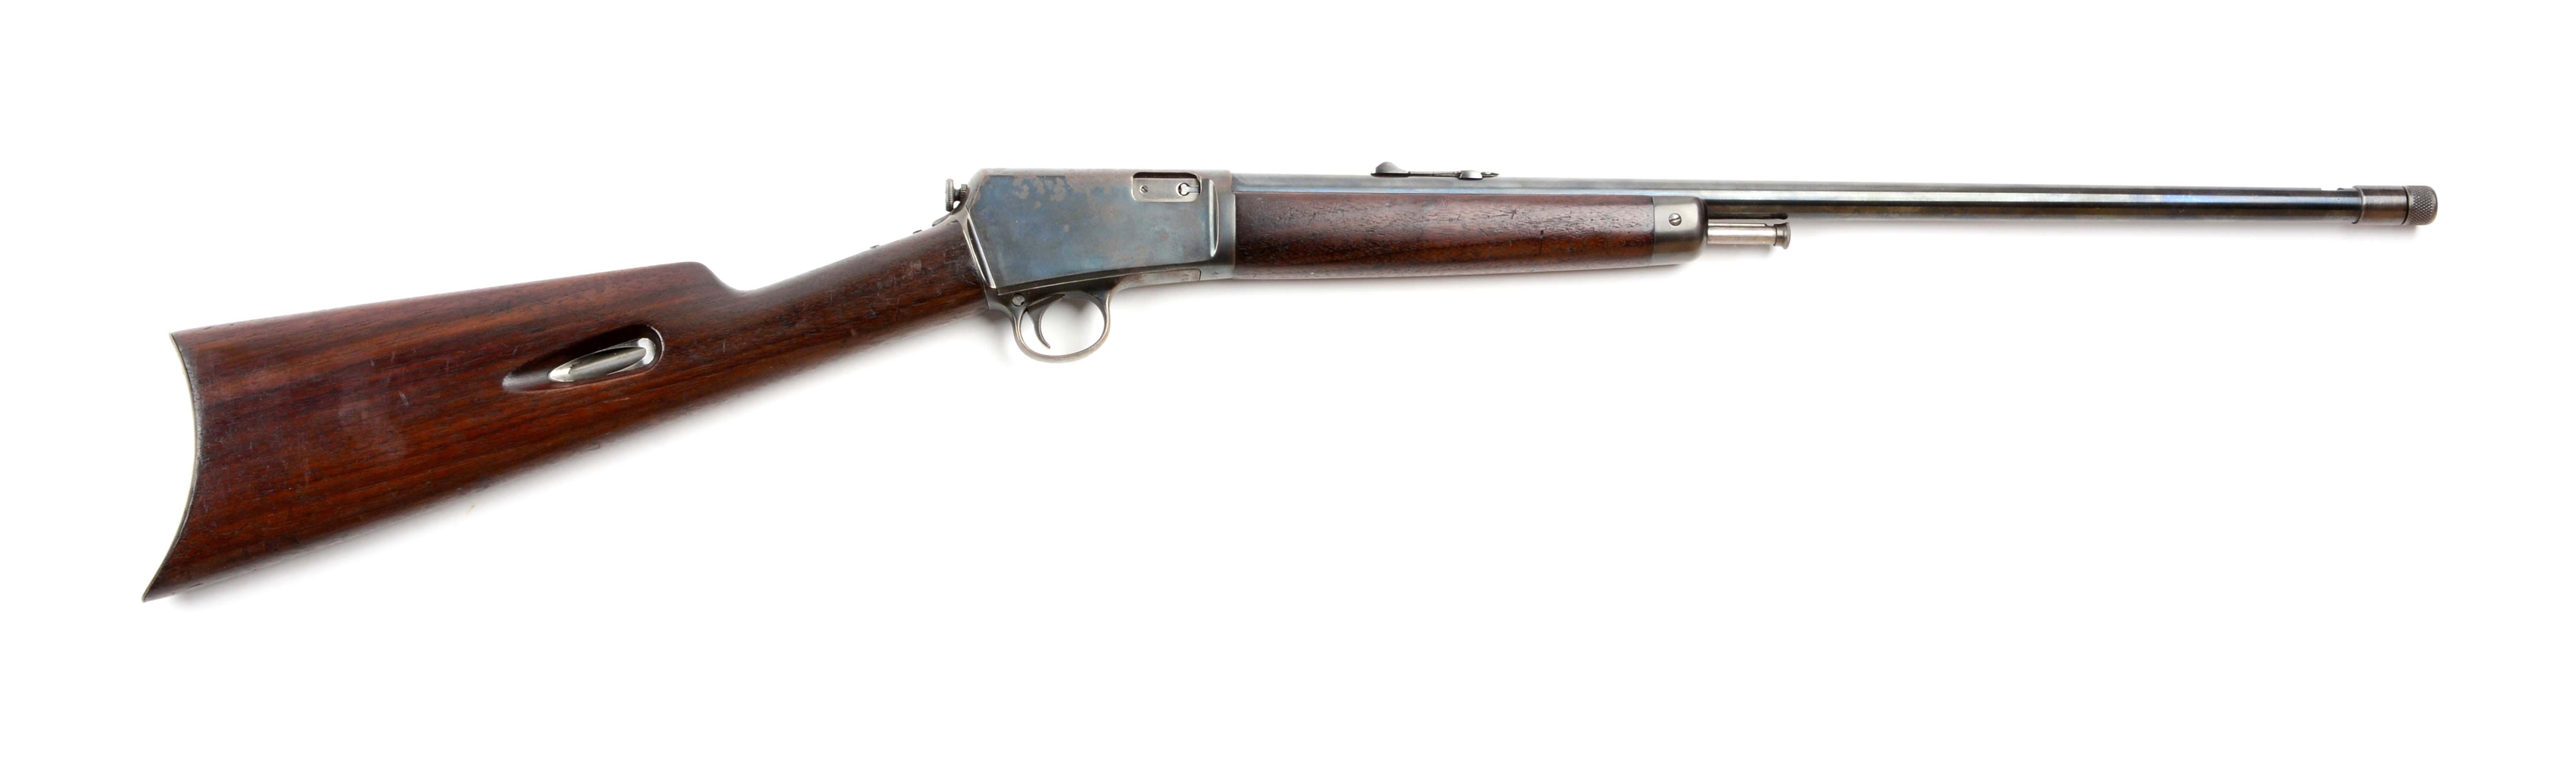 (C) Winchester Model 1903 Semi-Automatic Rifle Threaded For Silencer.